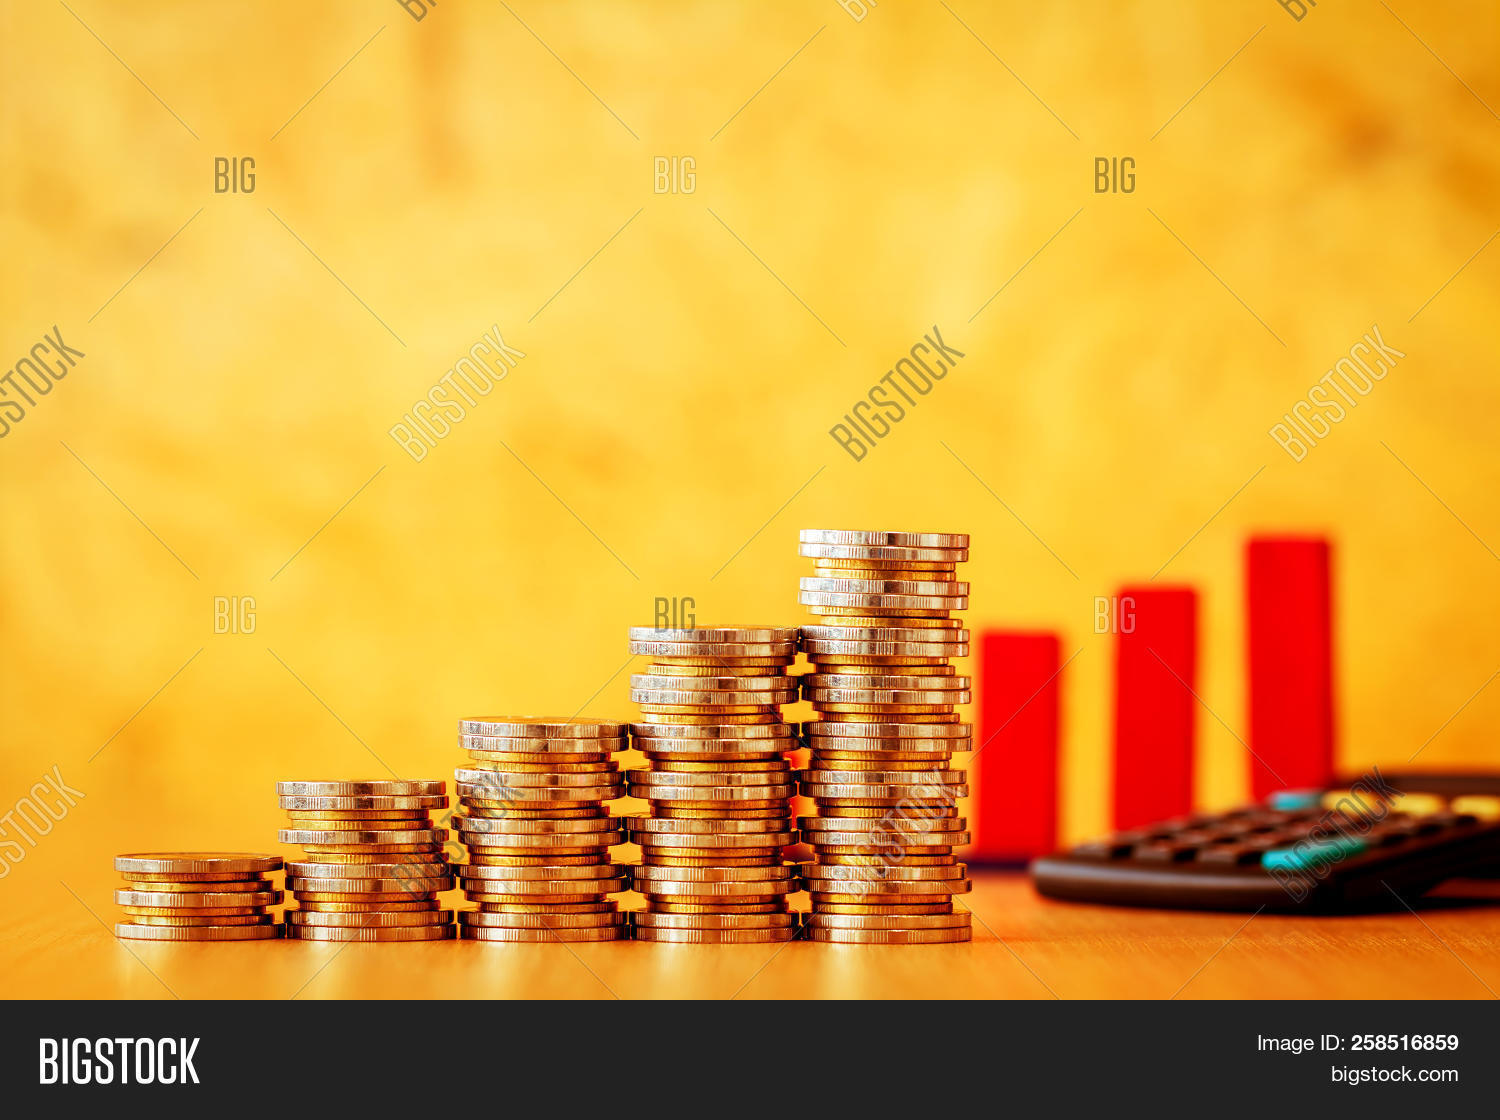 Stacking Gold Coins Image & Photo (Free Trial) | Bigstock